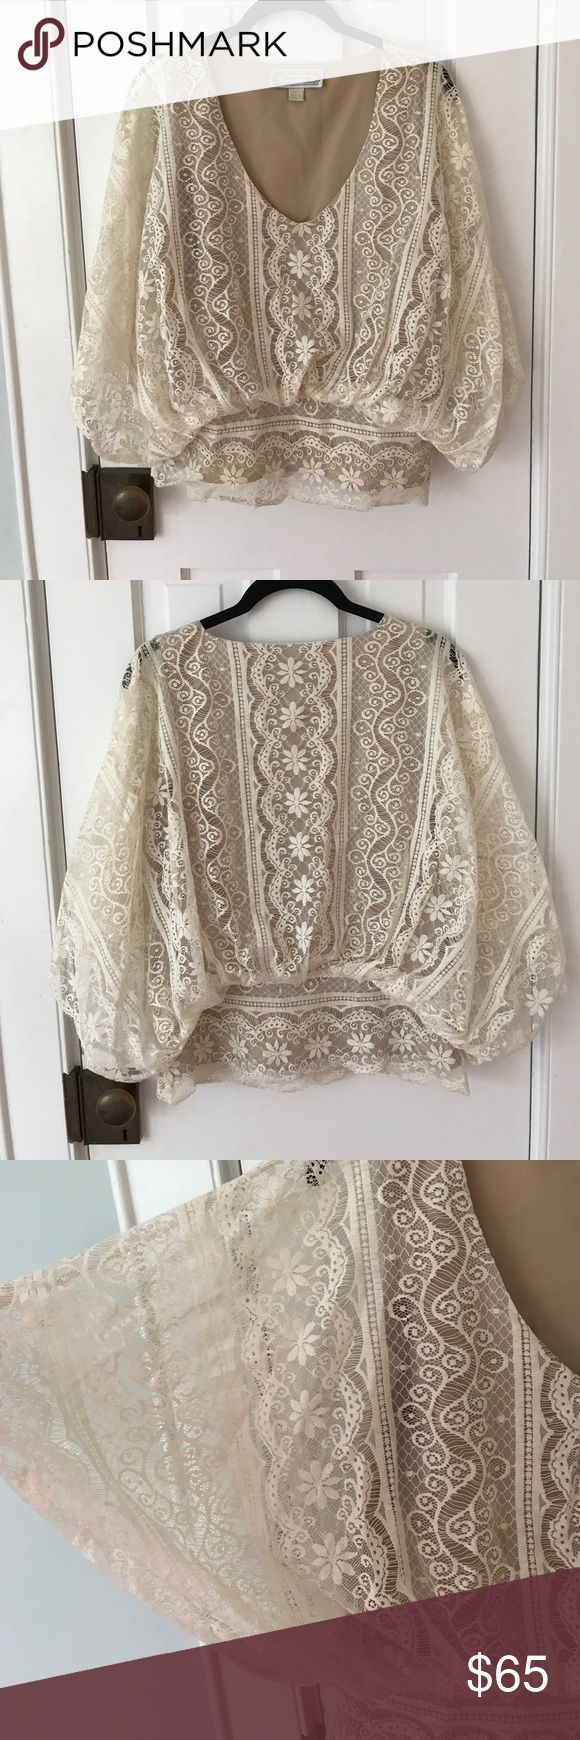 Beyond Vintage Ivory Lace Top Beautiful ivory lace top by Beyond Vintage. Dolman / batwing sleeves. Nude tank lining. Purchased at Shopbop; was also a best seller at Anthropologie and Free People. This top always gets tons of compliments. Perfect condition except for one small, easily removable stain - pictured.   Let me know if you have any questions or an offer! Beyond Vintage Tops